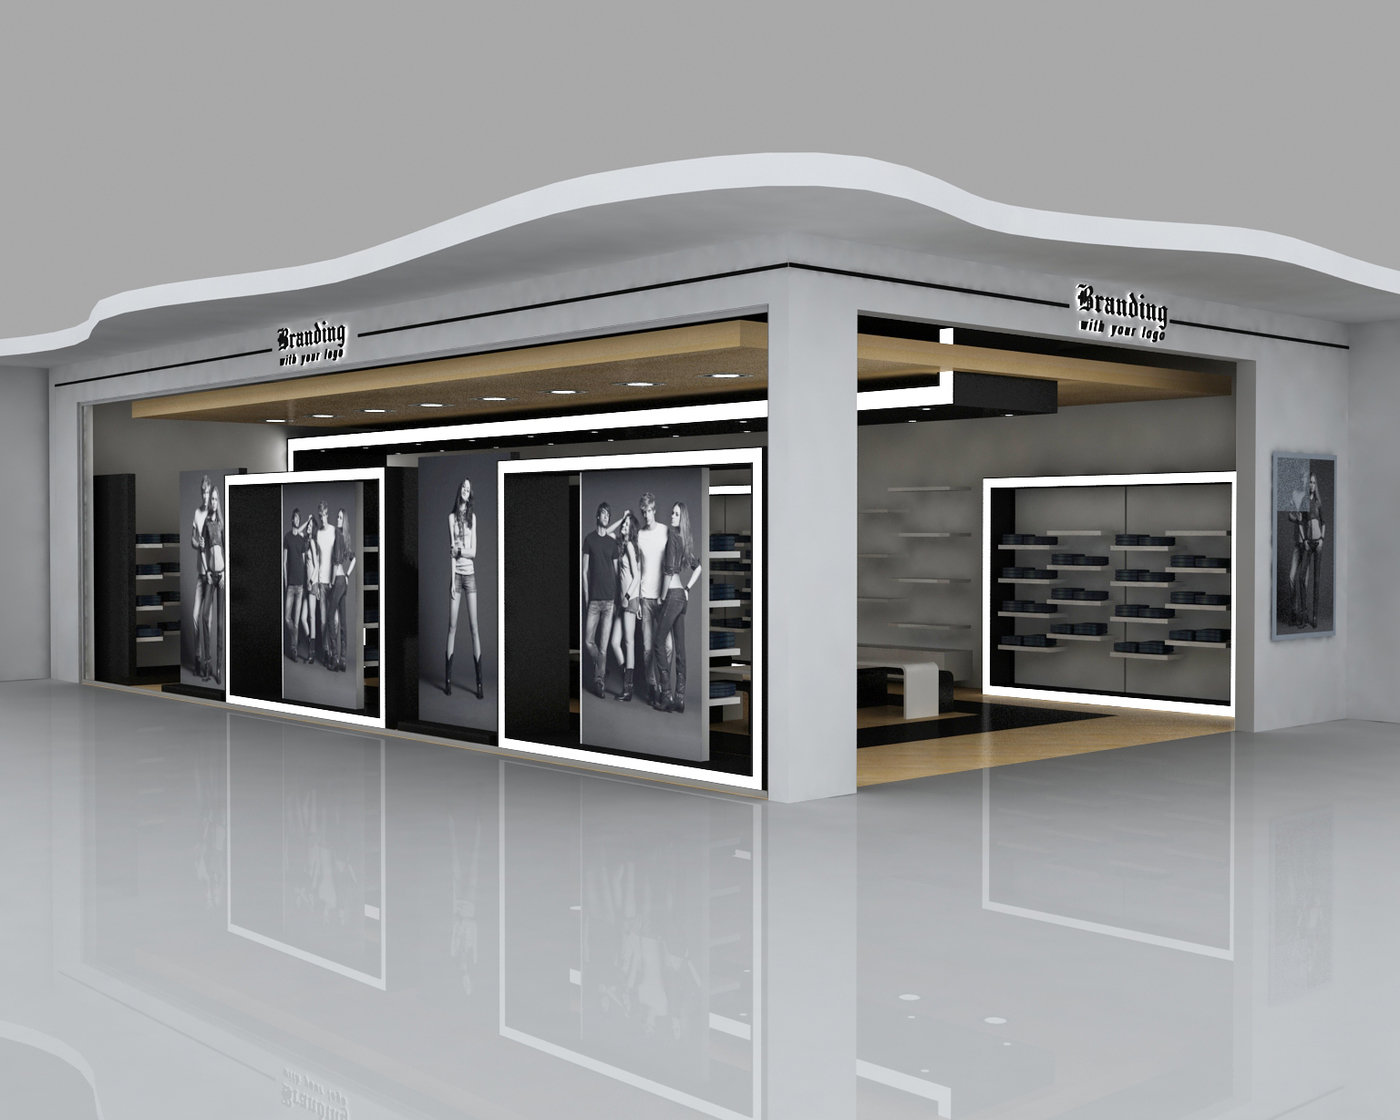 Exhibition Stand Design Jobs In Dubai : Interior exterior designing by yahkoob valappil at